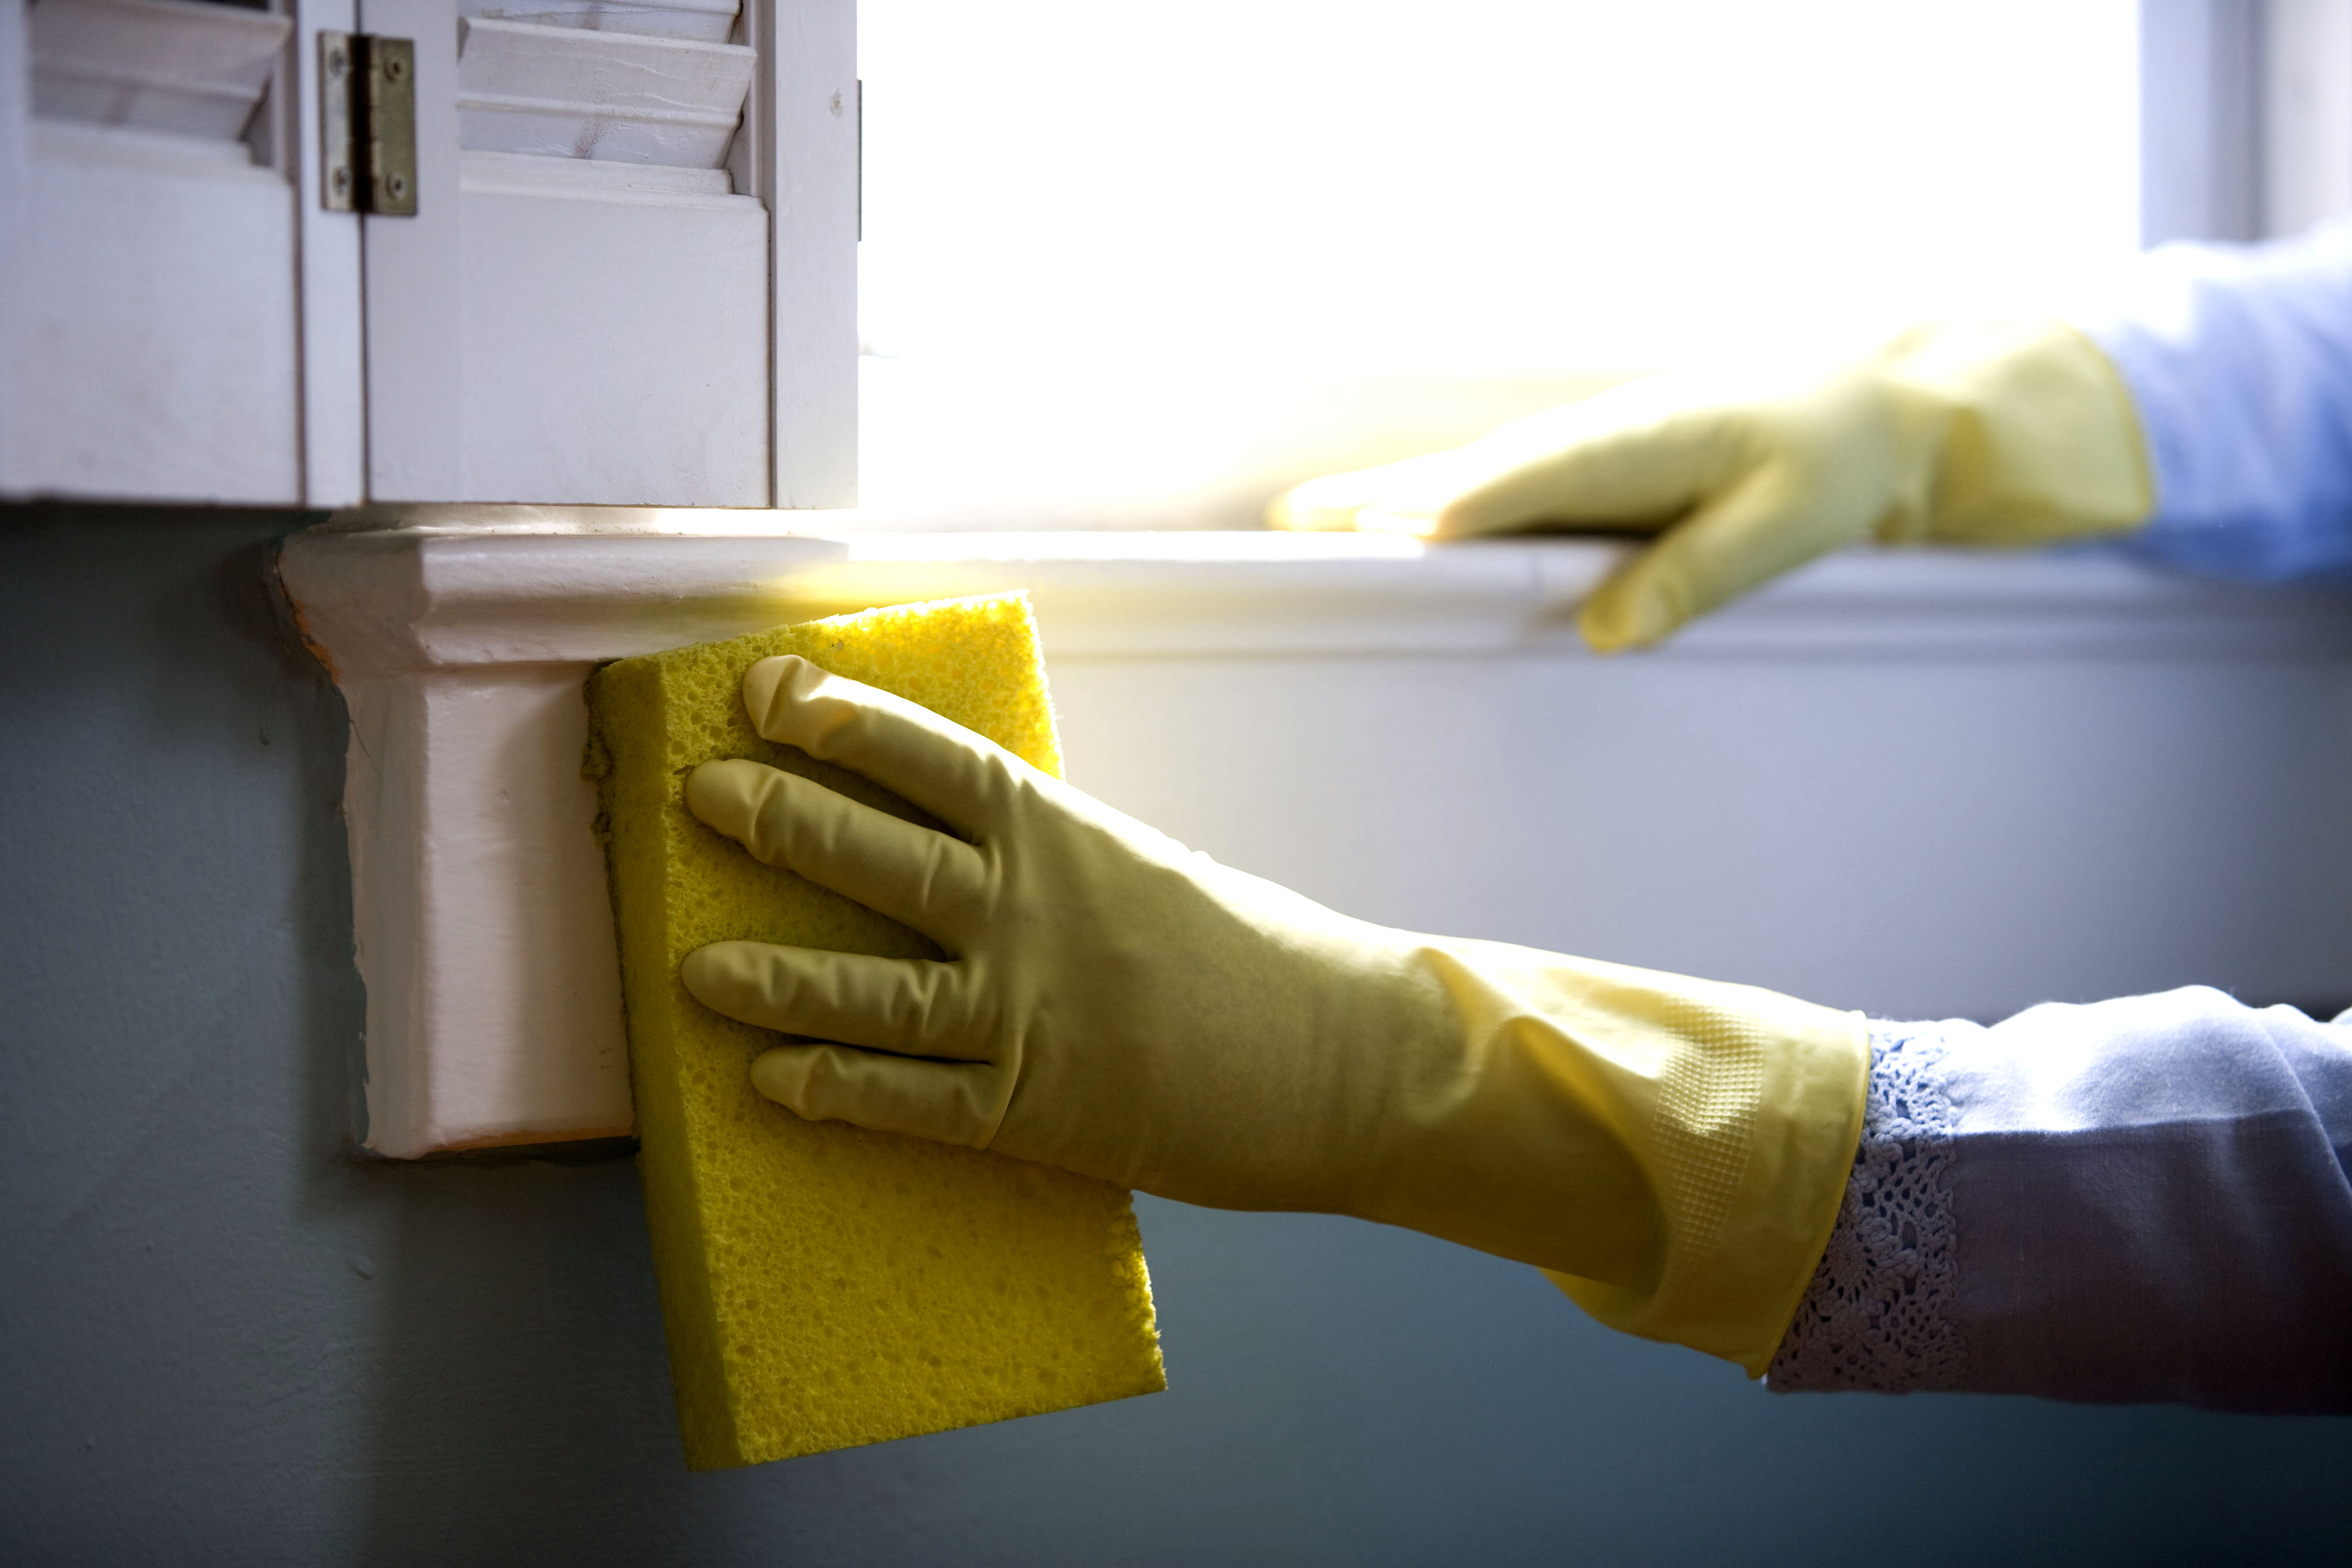 12 Ways To Turn Housework Into A Workout